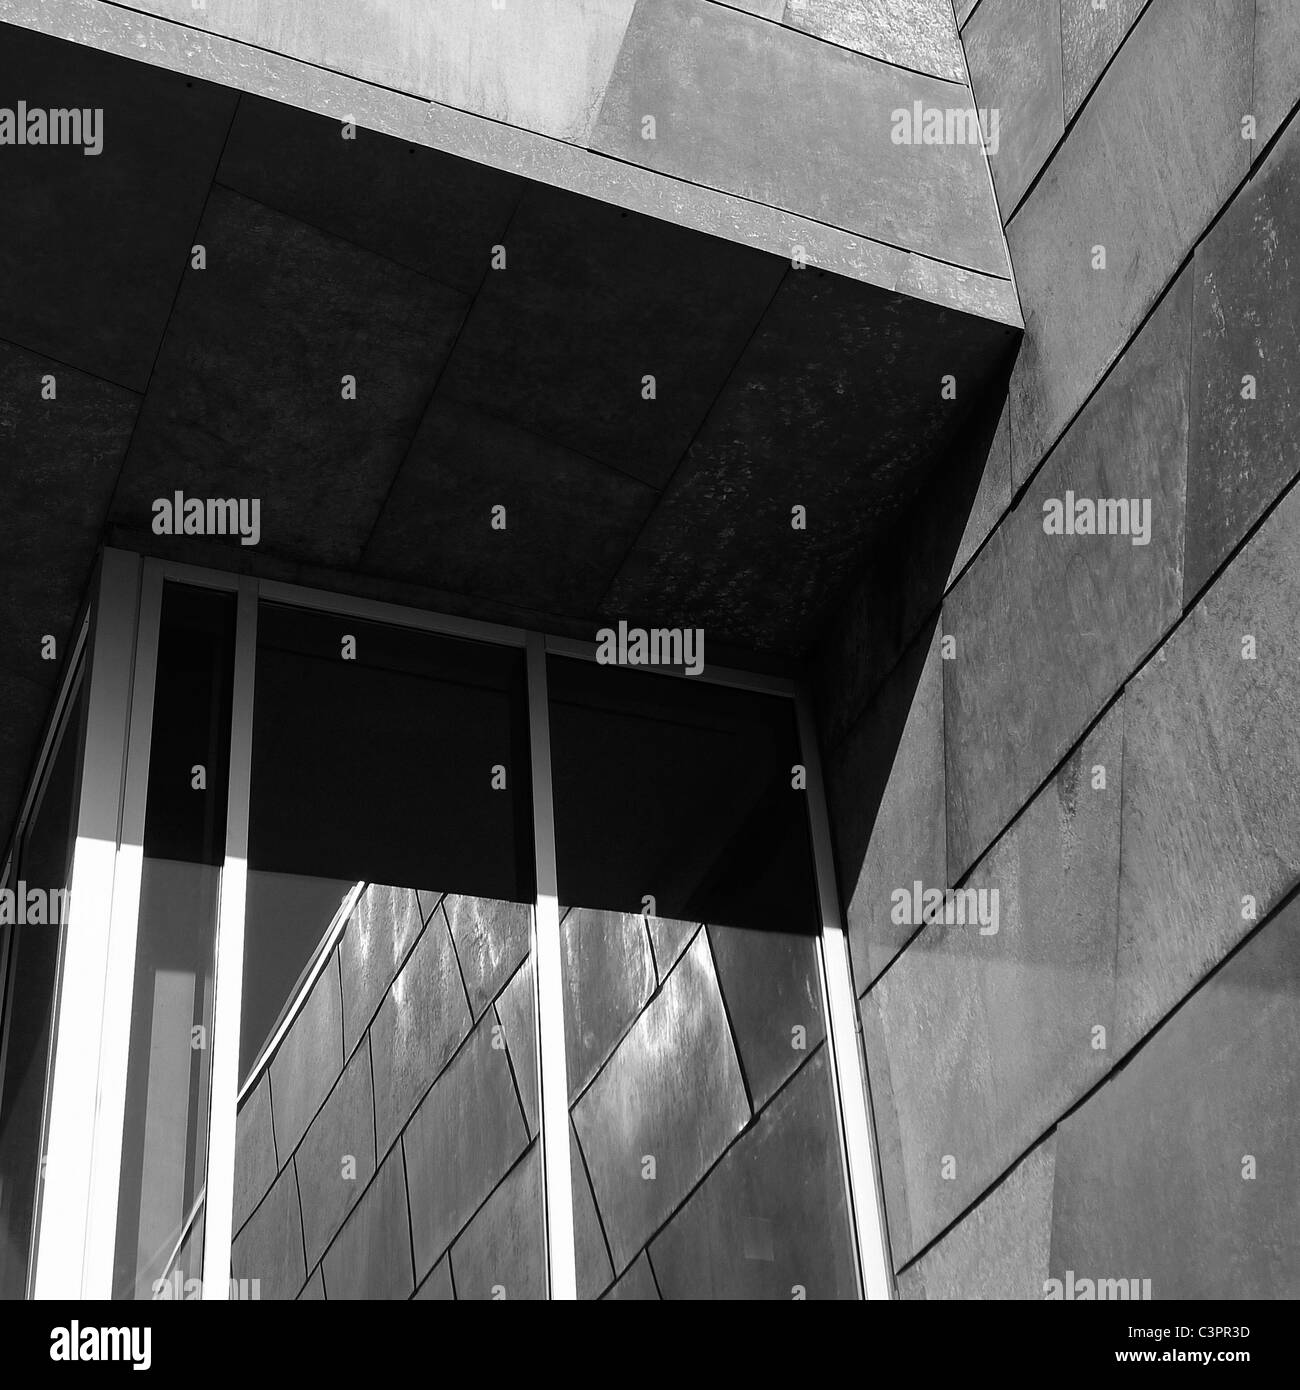 Canadian Cities, Architectural Details, The Art Gallery of Alberta, Edmonton Alberta Canada. - Stock Image